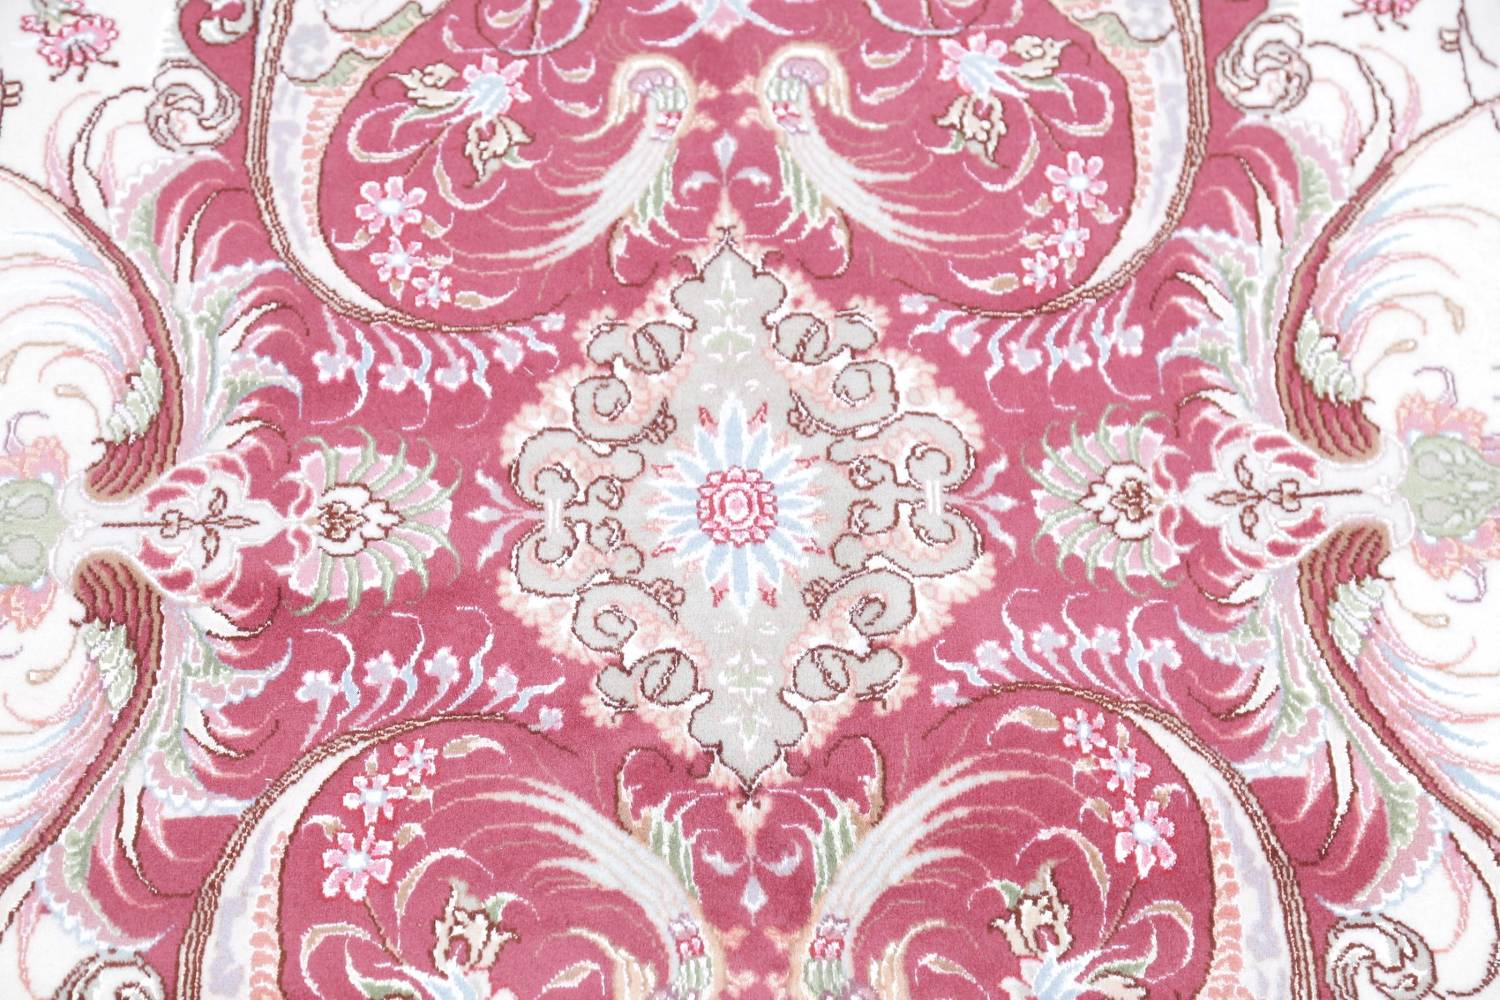 Vegetable Dye Floral Ivory Tabriz Persian Hand-Knotted Area Rug 7x10 image 12